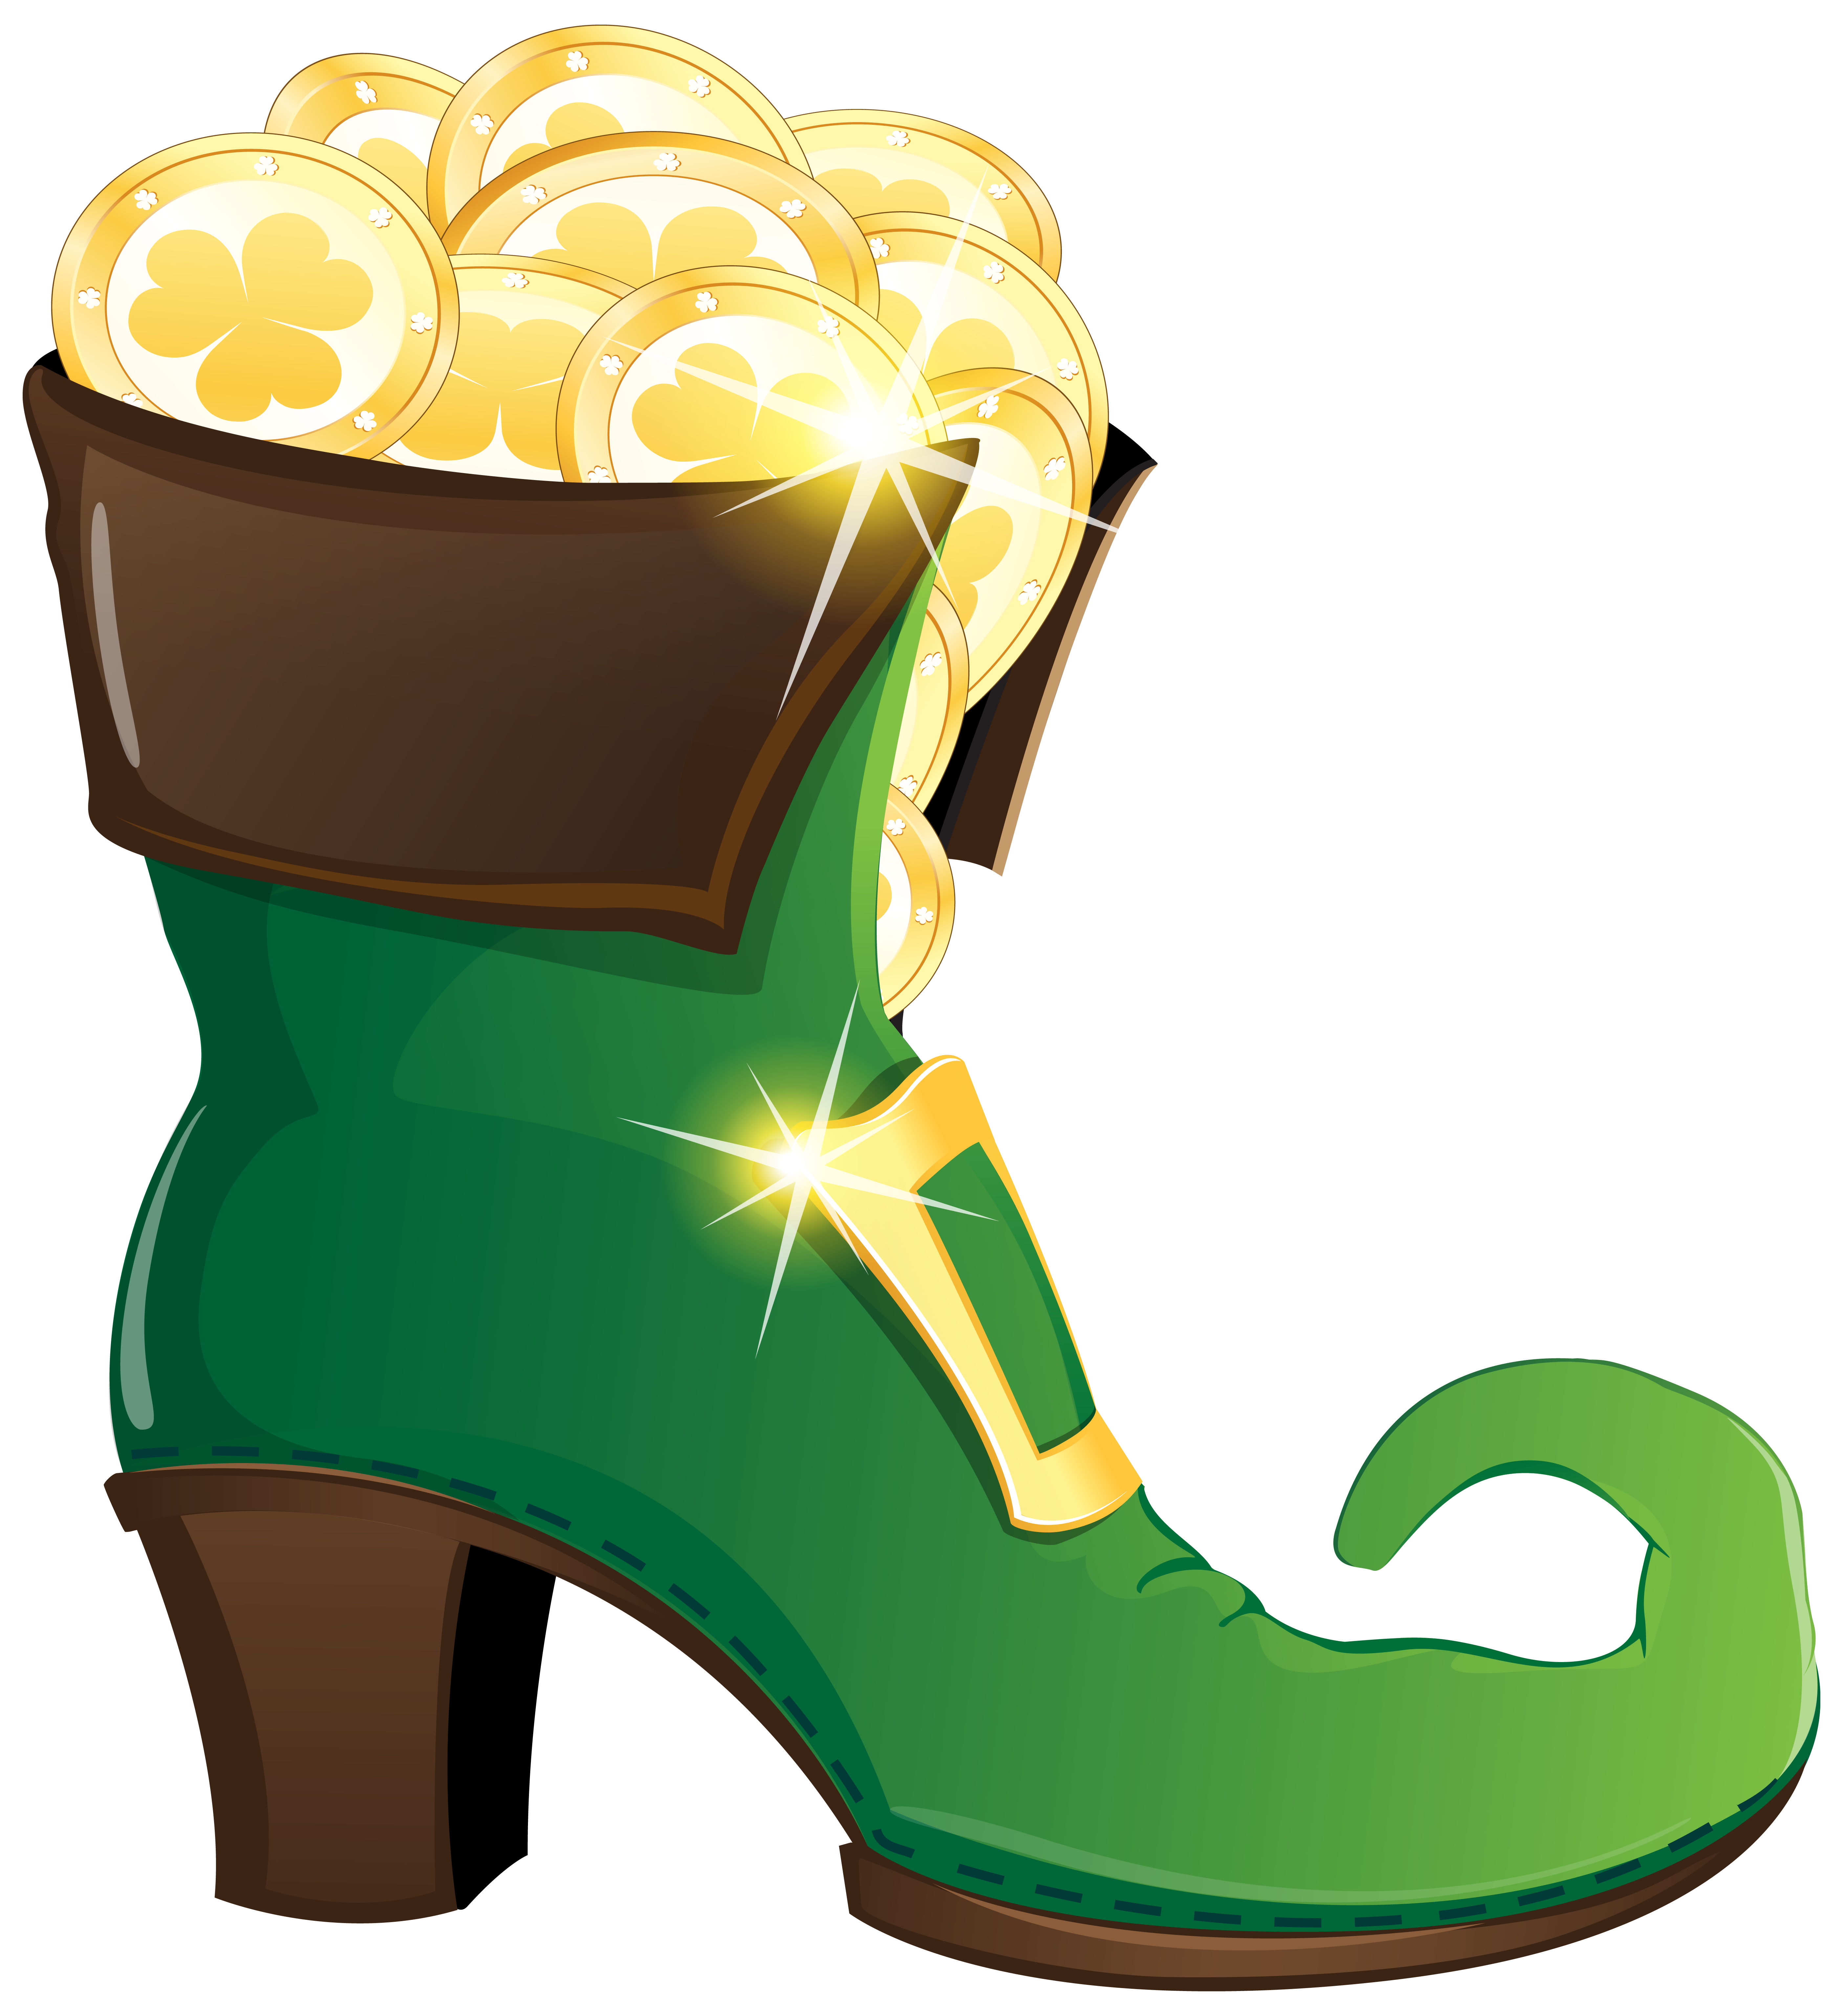 School shoes clipart clip art freeuse Leprechaun Shoe with Gold Coins PNG Clipart Image | Gallery ... clip art freeuse